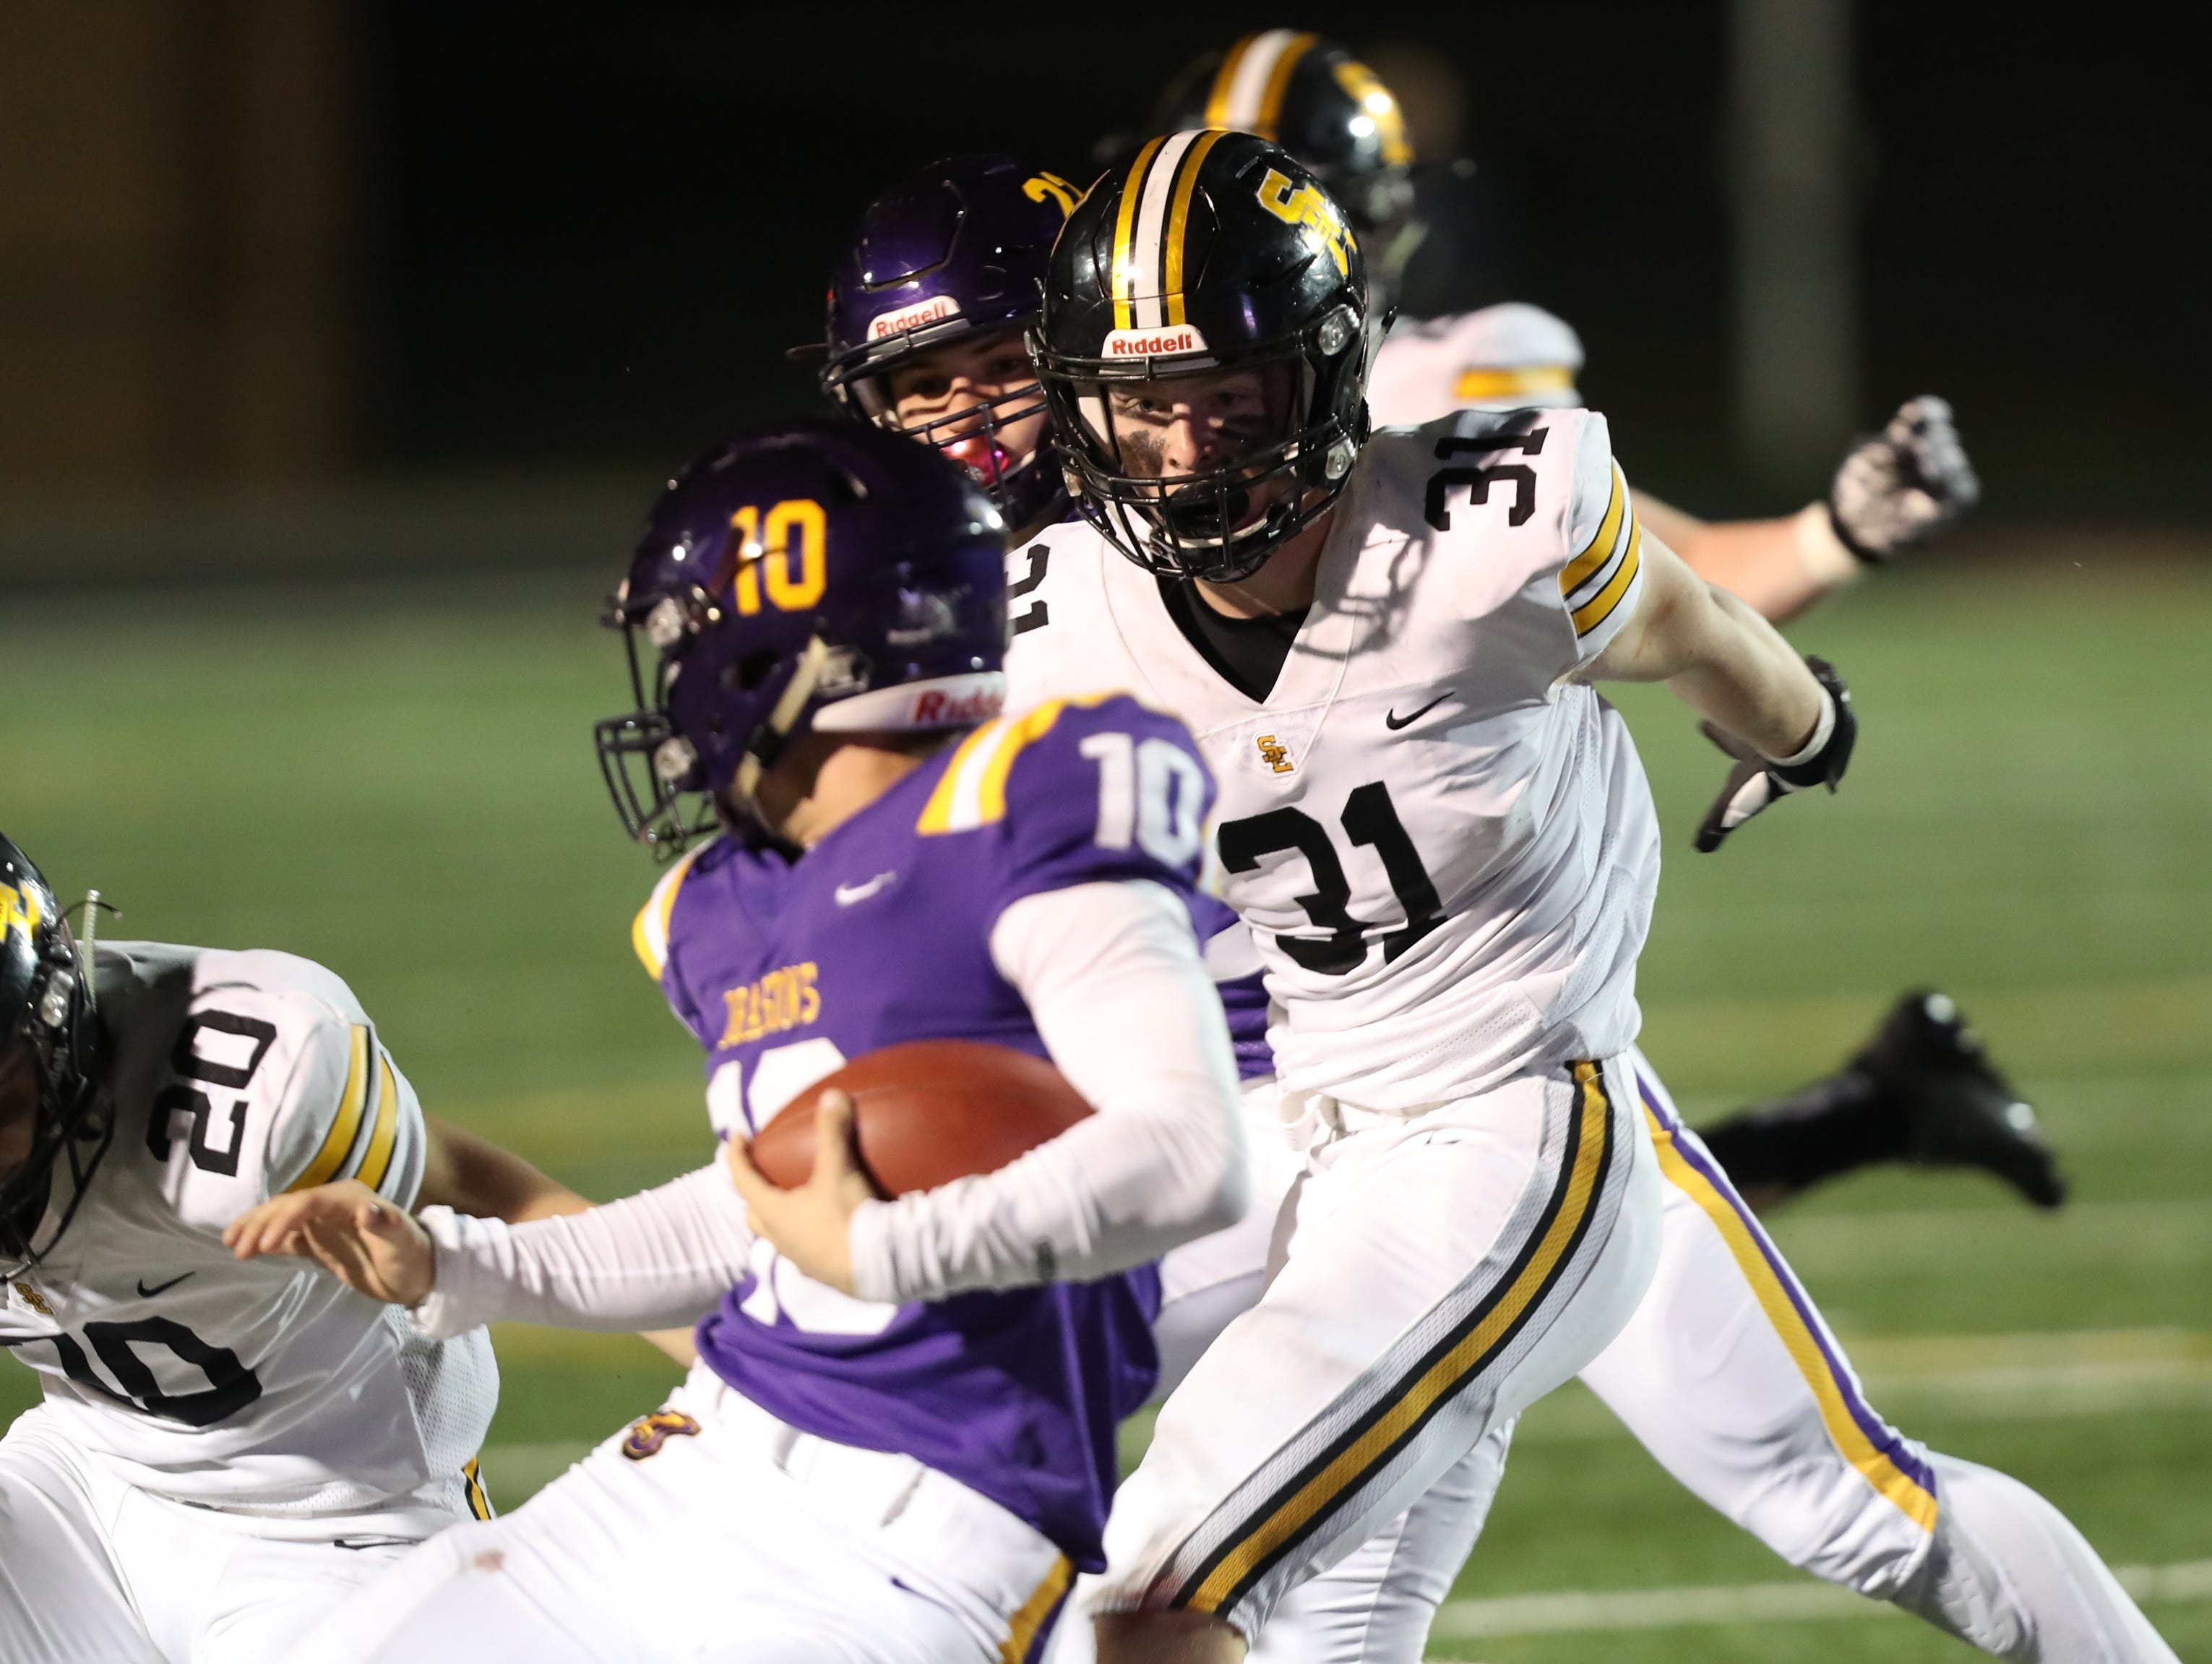 Nov 2, 2018; Johnston, IA, USA; Southeast Polk Rams Carter Olesen (31) tackles Johnston Dragons Andrew Nord (10) at Johnston Stadium. The Rams beat the Dragons 21-7.